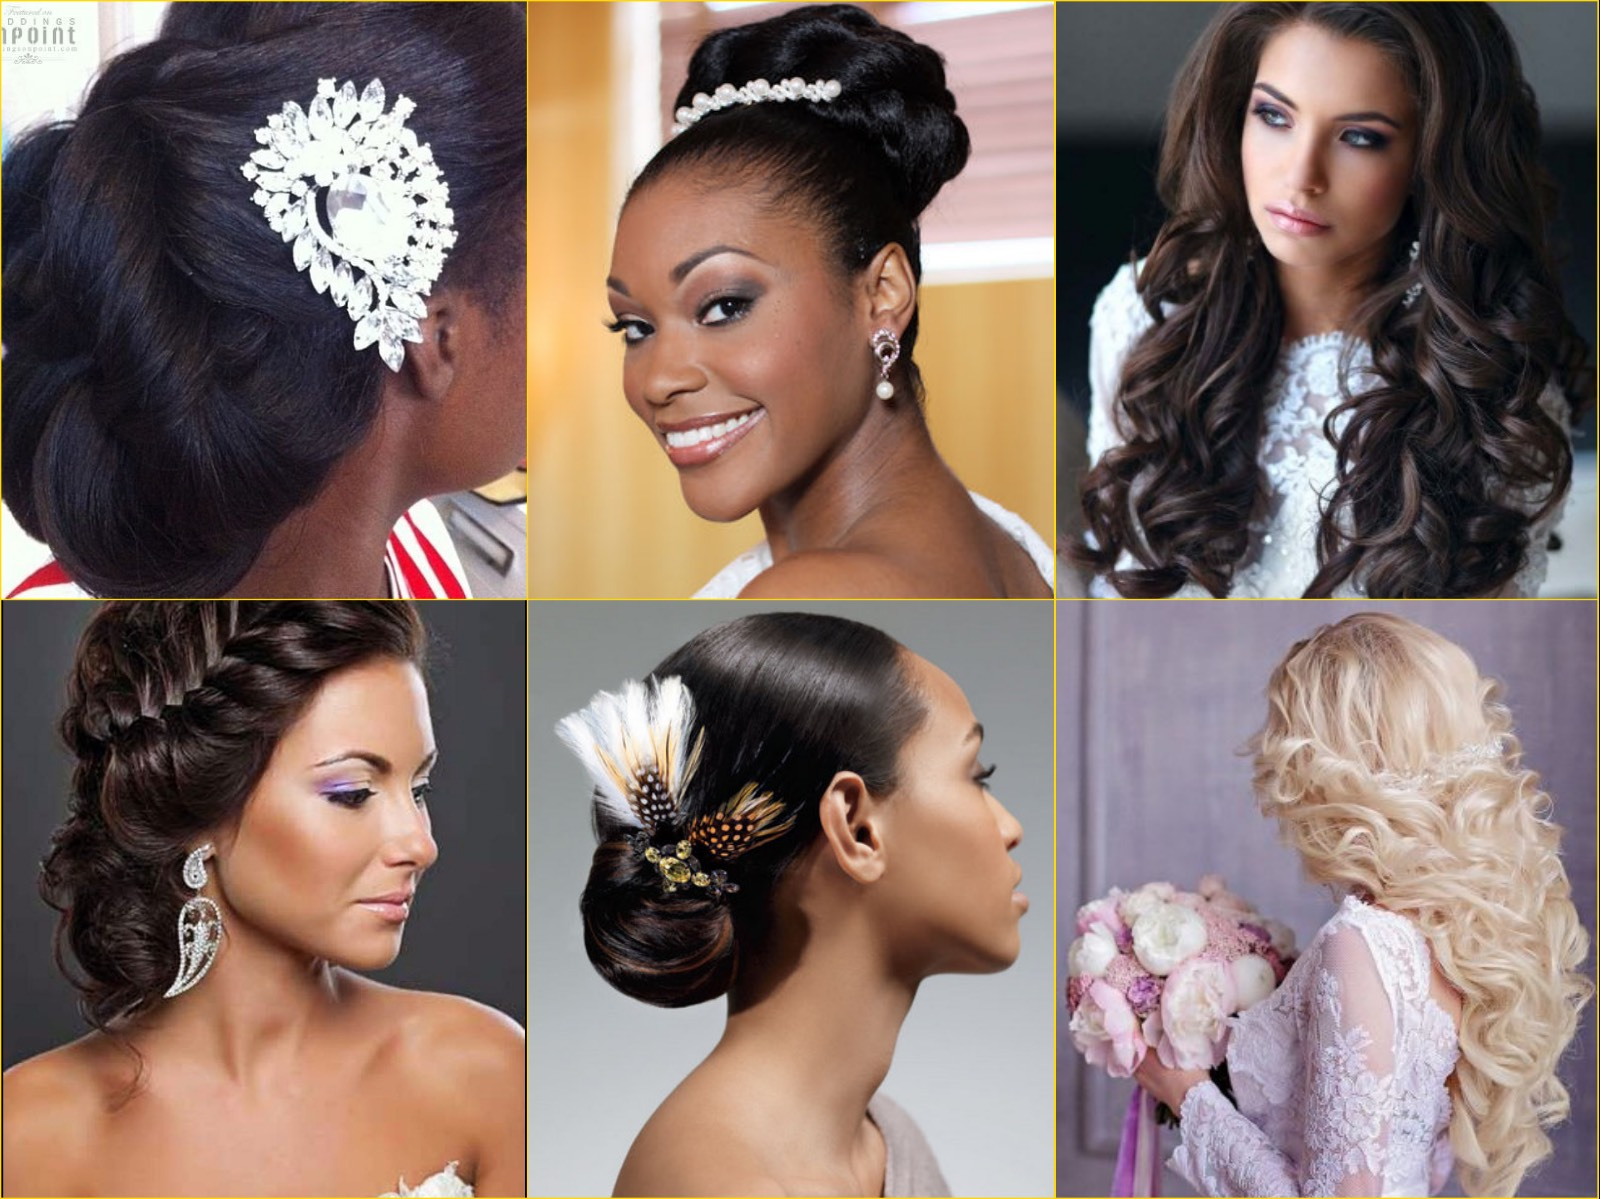 Online Hair Style: The 4 Most Desired Hairstyles By Bold Brides (PHOTOS